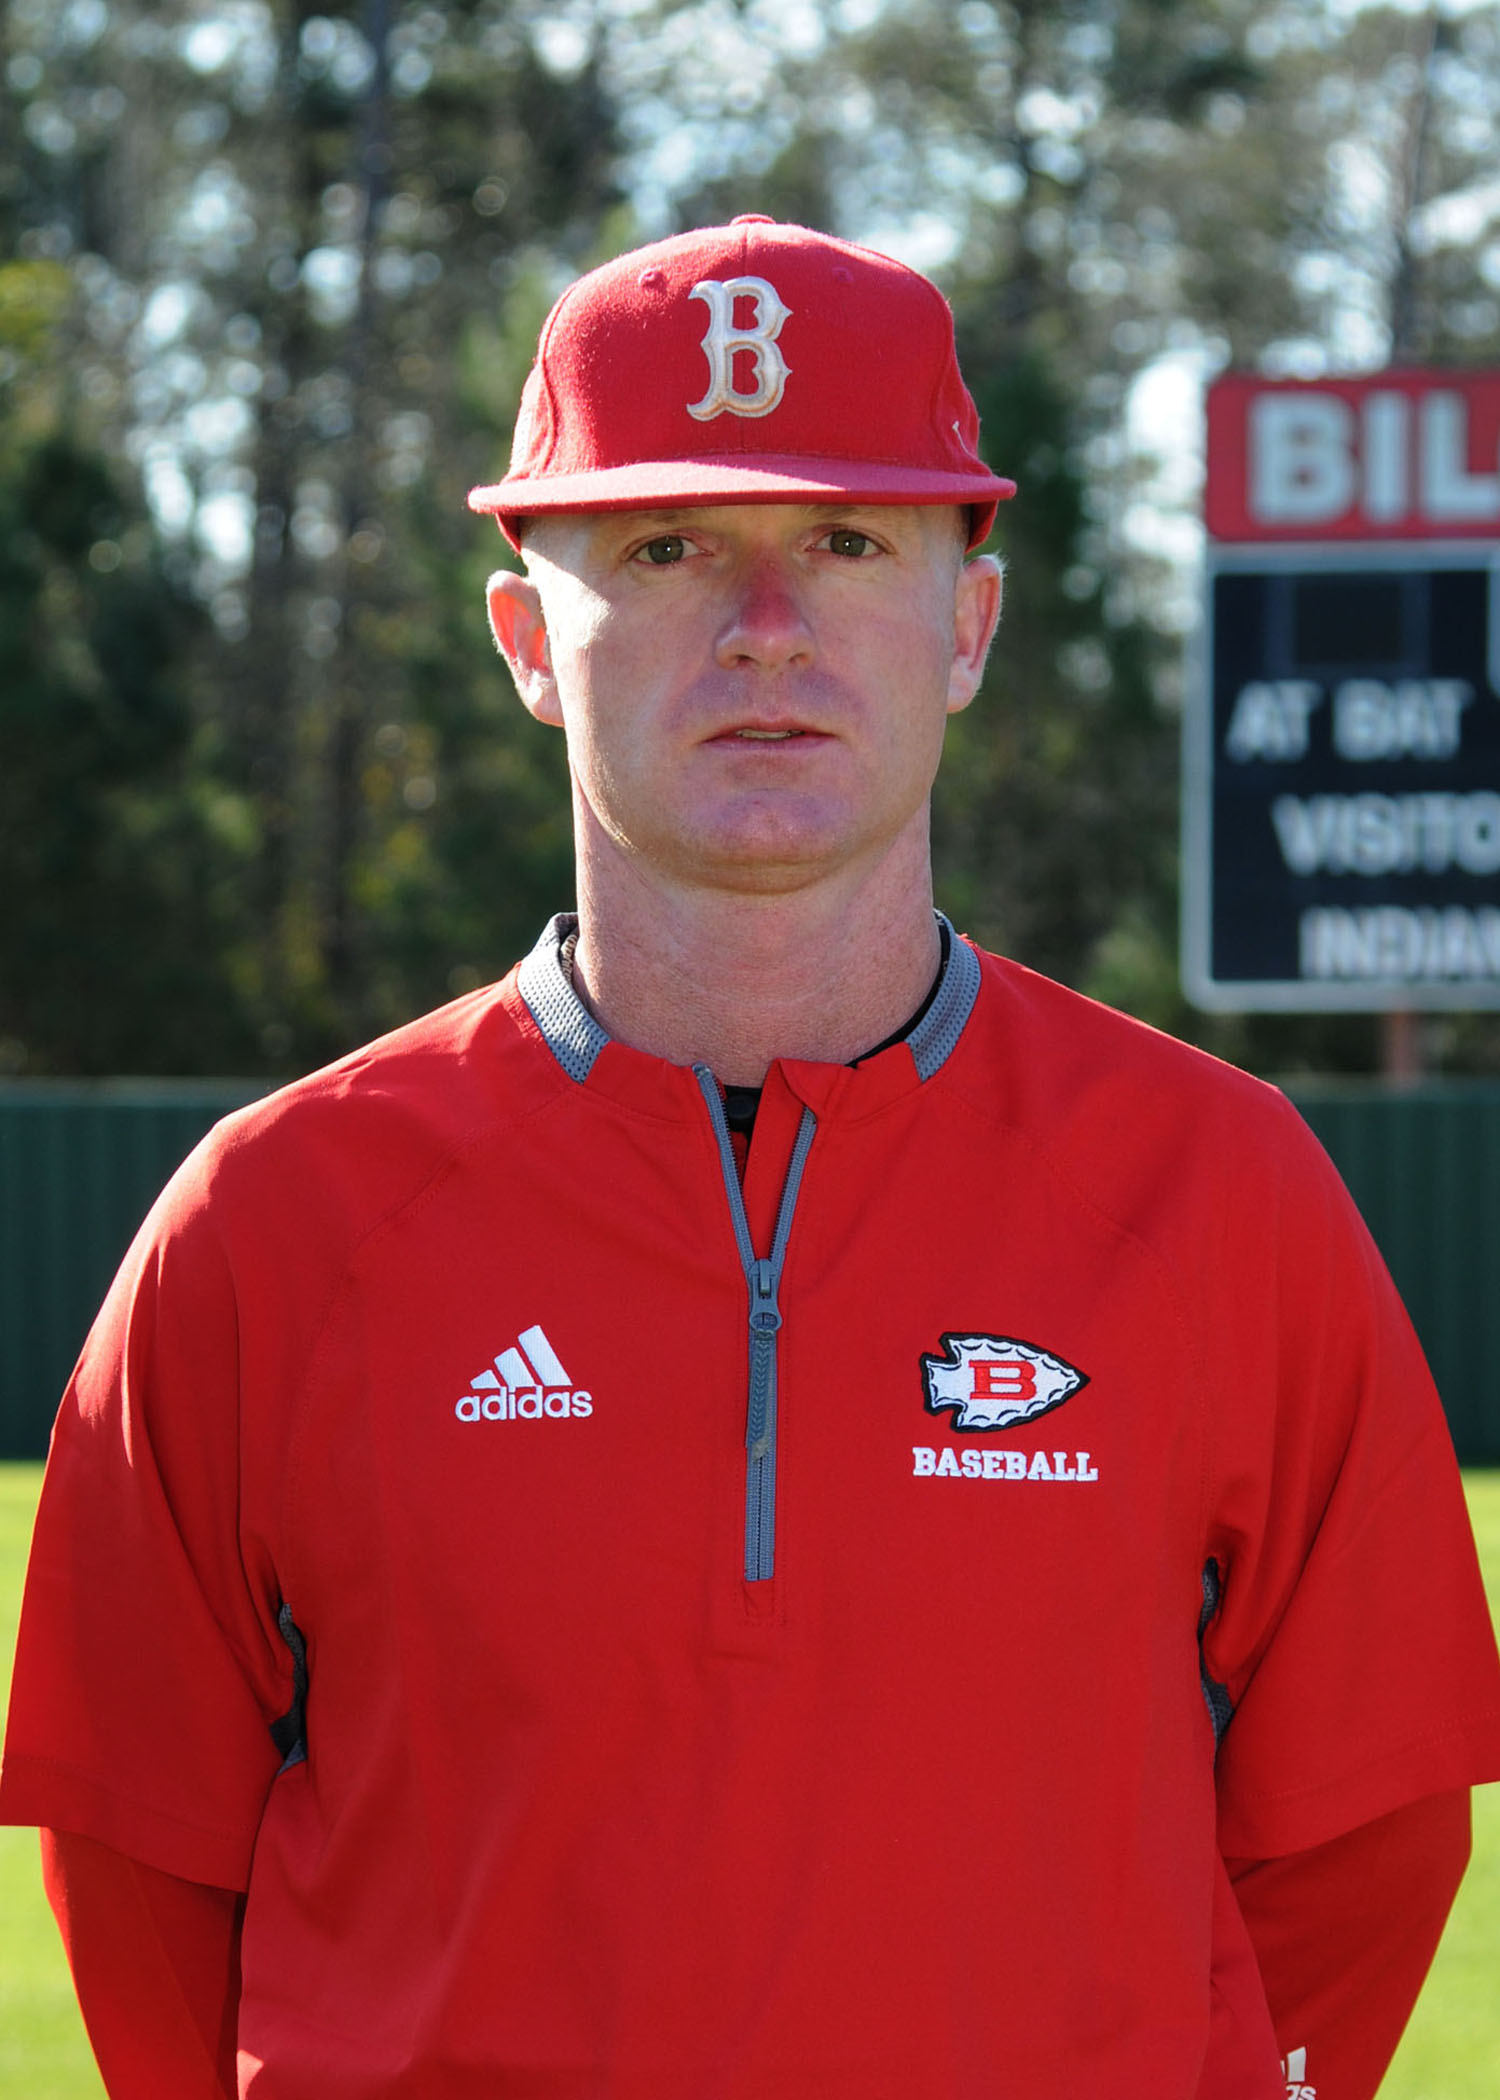 """Jeremy Cothran - Coaching History:2005- 2013 Assistant Baseball at Pearl River Central High School2013- 2014 Head Baseball at Tylertown High School2014- 2015 Assistant Baseball at Bay High School2015- Present Head JH/ Assistant at Biloxi High SchoolEducation/Experience:BS Coaching and Sports Administration  University of Southern MS 2005Family: Wife-Mary CothranSons- Wes Cothran (10), Wil Cothran (8), Walker Cothran (4), Nick Dukes (12)Daughters- Linley Cothran (4), Arianna Dukes (13)Outlook for 2018: As part of the best coaching staff, school, and community in the state I'm looking forward to a great season. With the teams offseason hardwork and dedication to the program I believe the results will show for itself. We strive to make """"Indian Nation"""" the best place to play baseball in the state! Go Indians!!!"""